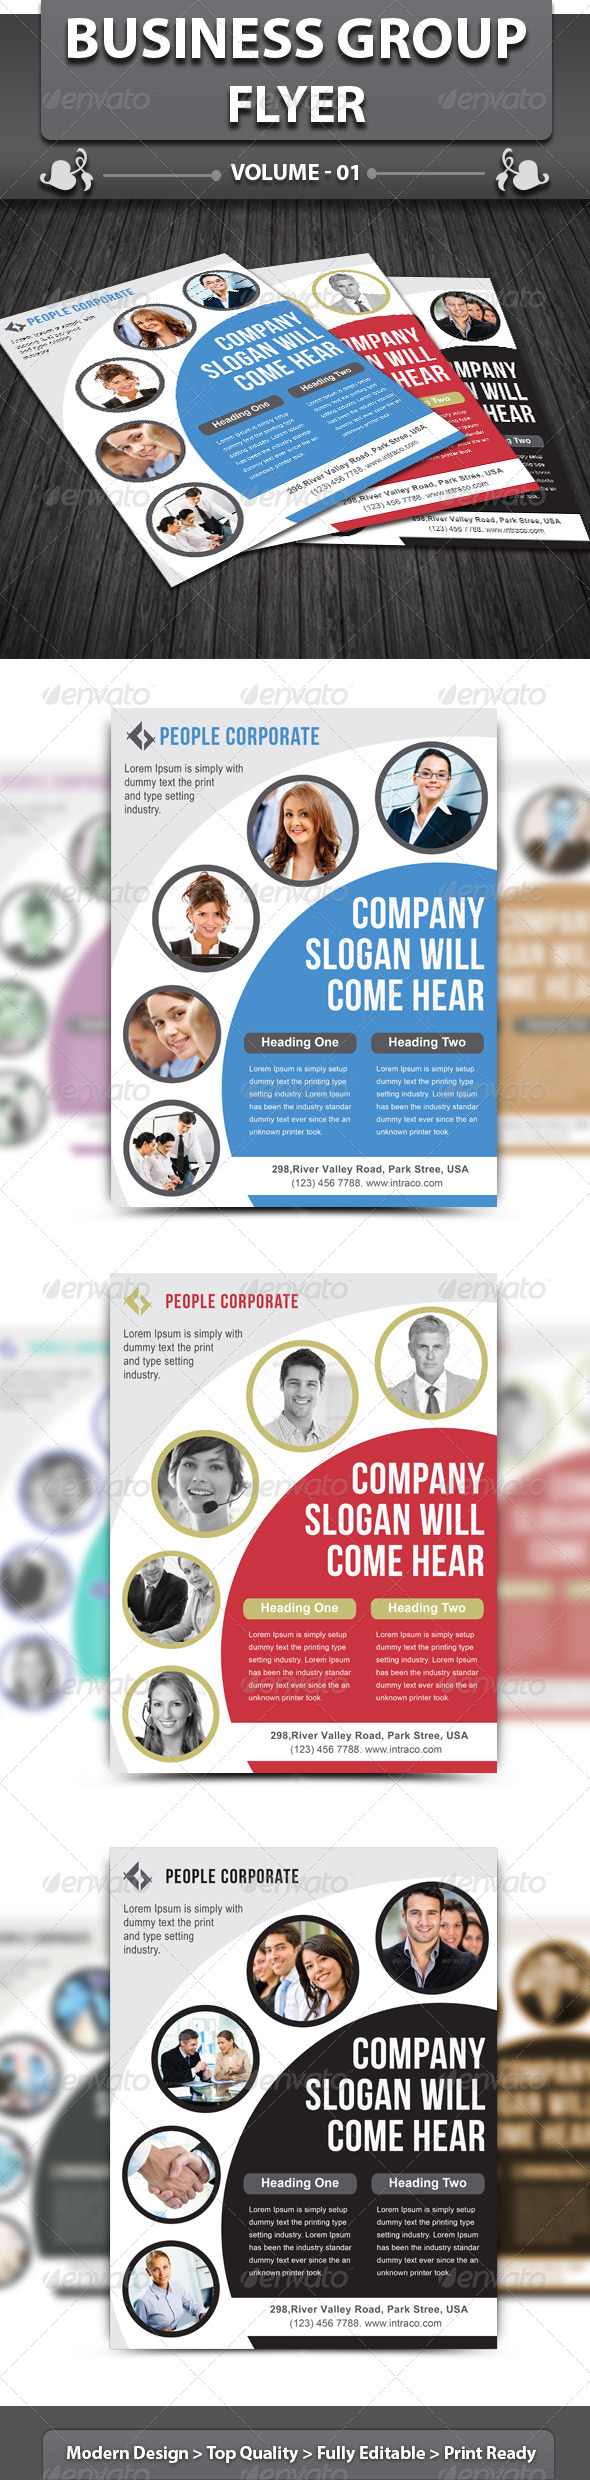 GraphicRiver Business Group Flyer 4062830